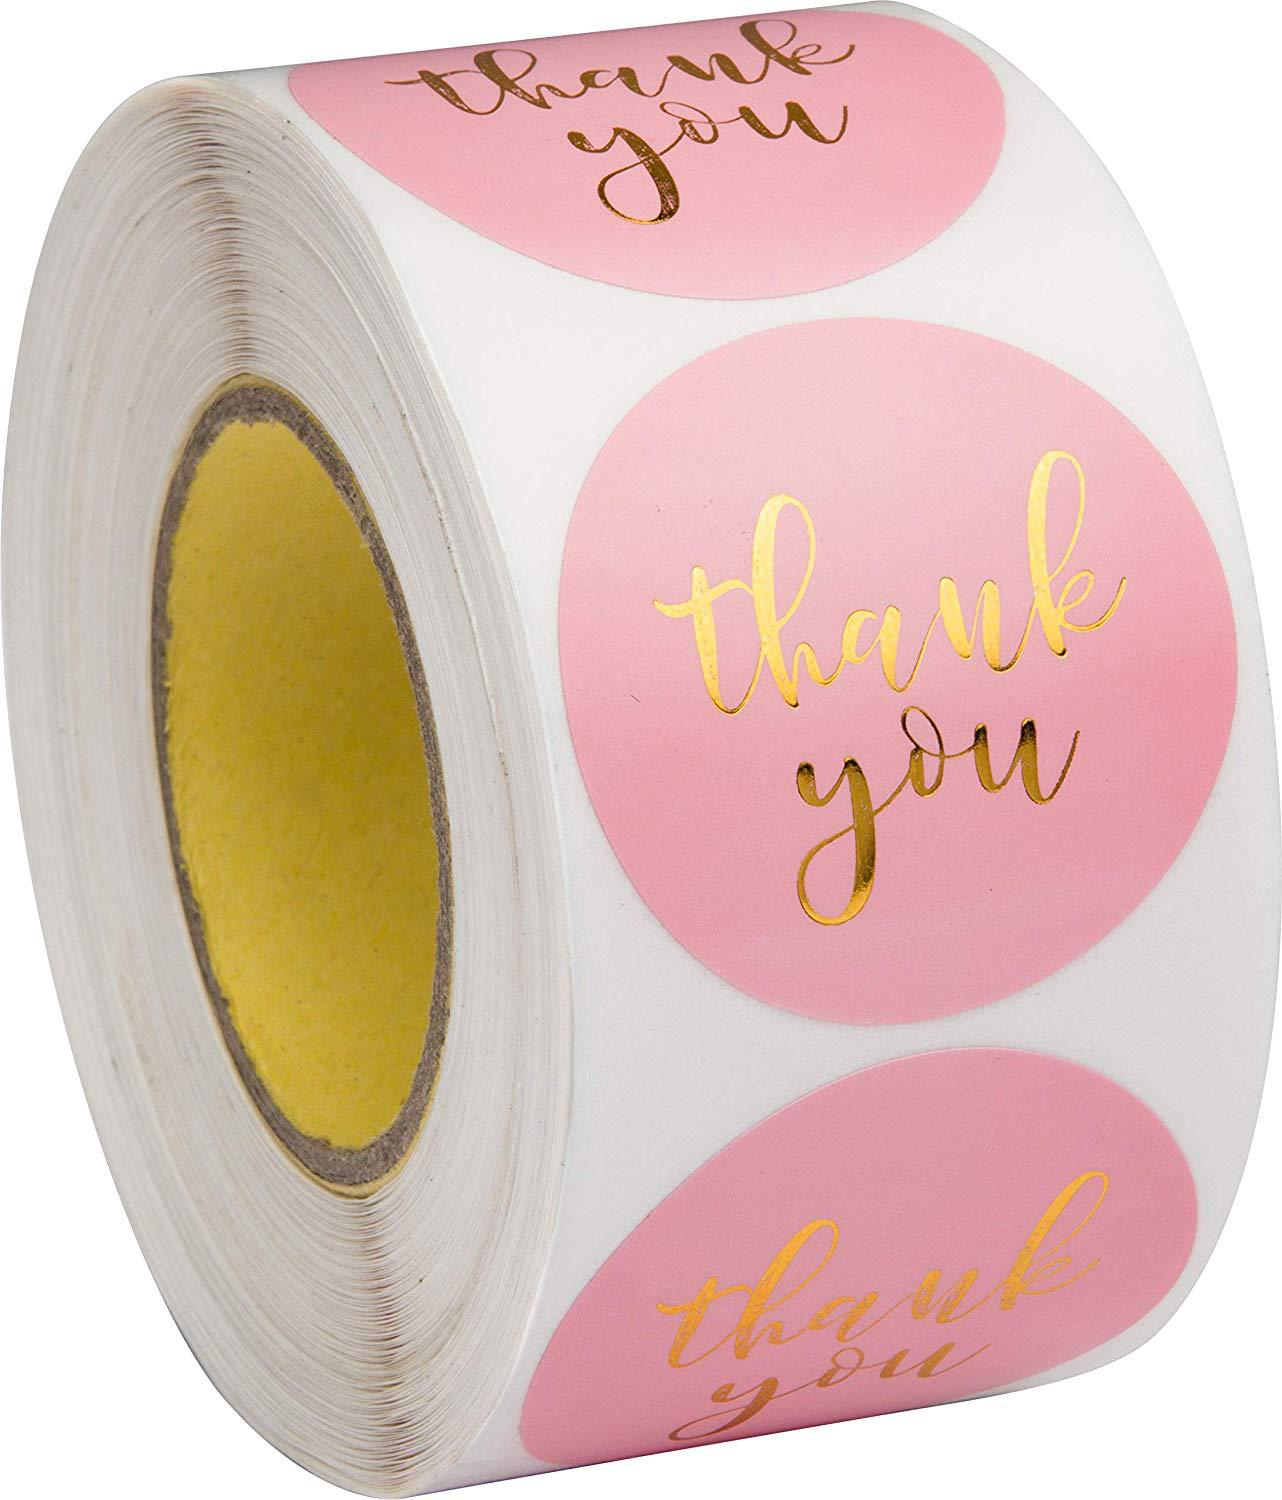 Foil Pink Thank You Stickers Scrapbooking 1'' 500pcs Paper Adhesive Stickers Wedding Packaging Seal Labels Stationery Sticker